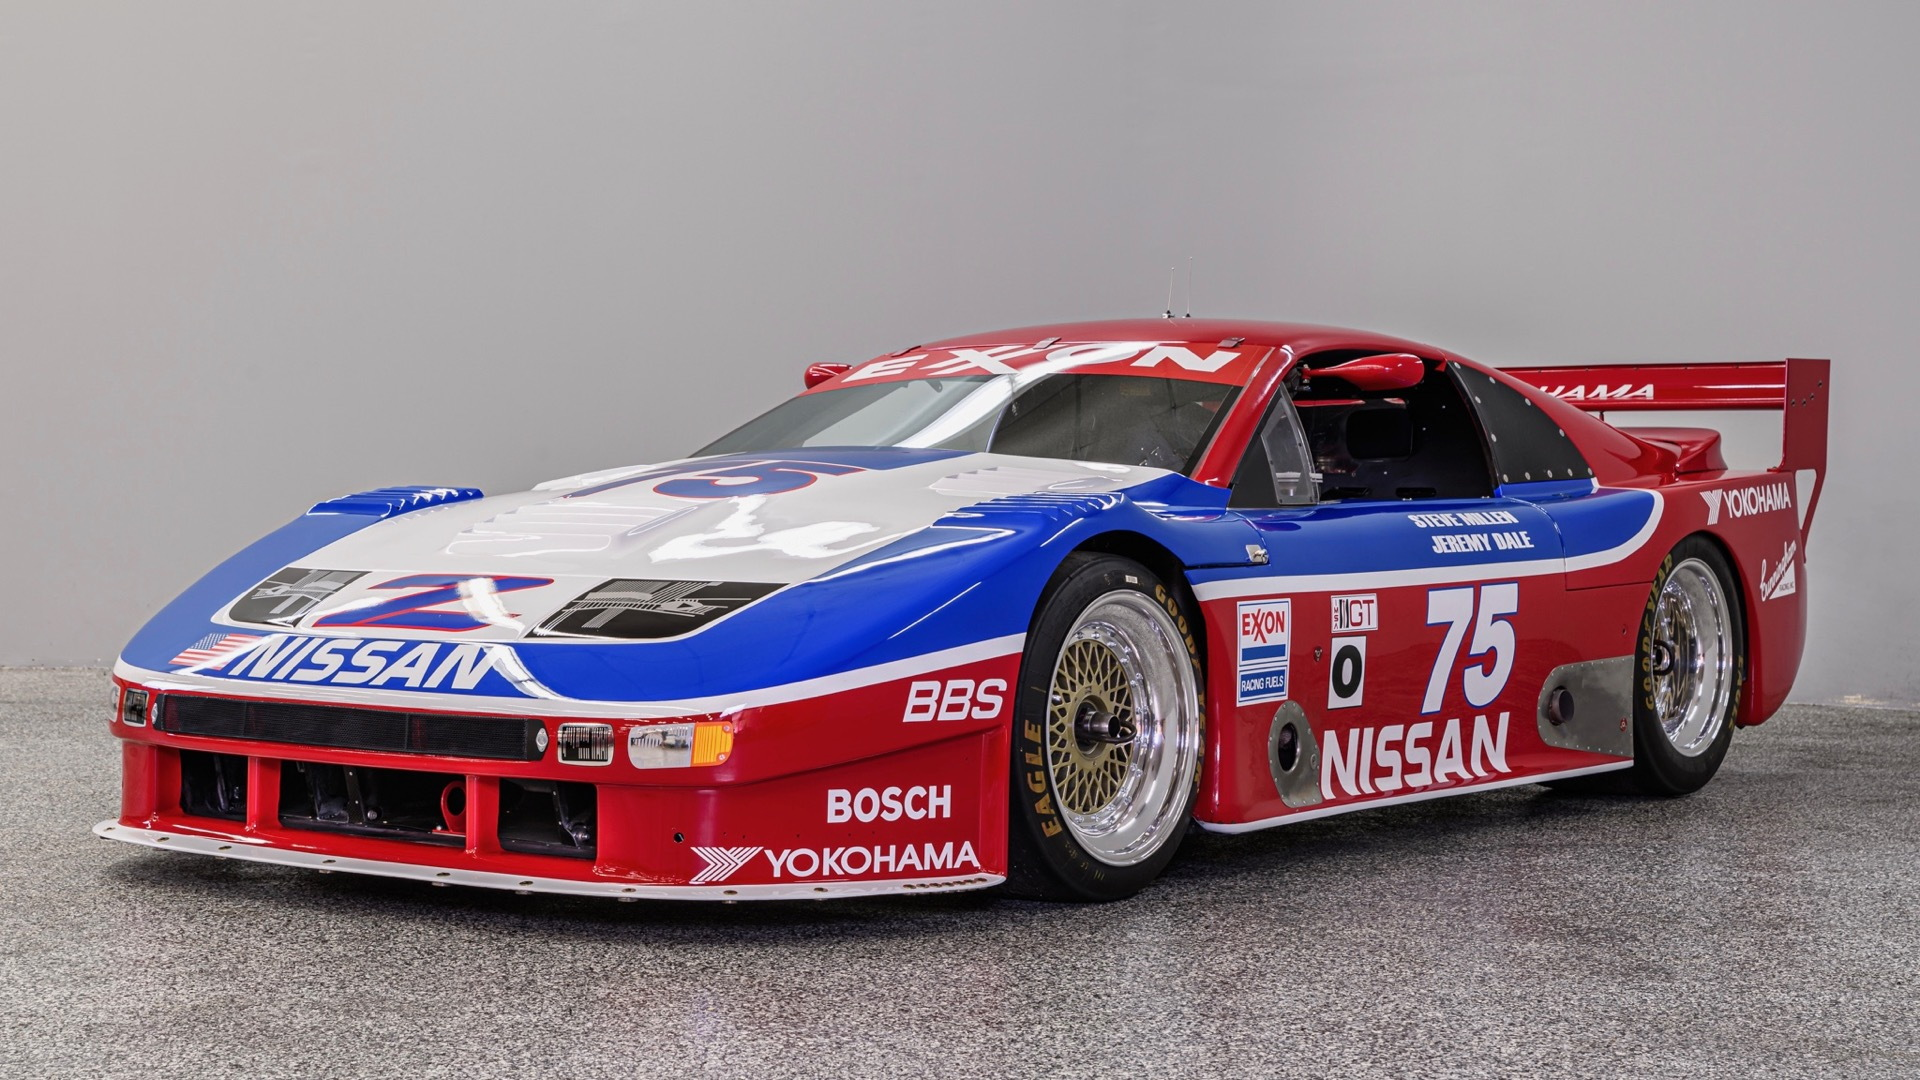 1990 Nissan 300ZX Twin Turbo IMSA GTO race car (Photo by Bring a Trailer)